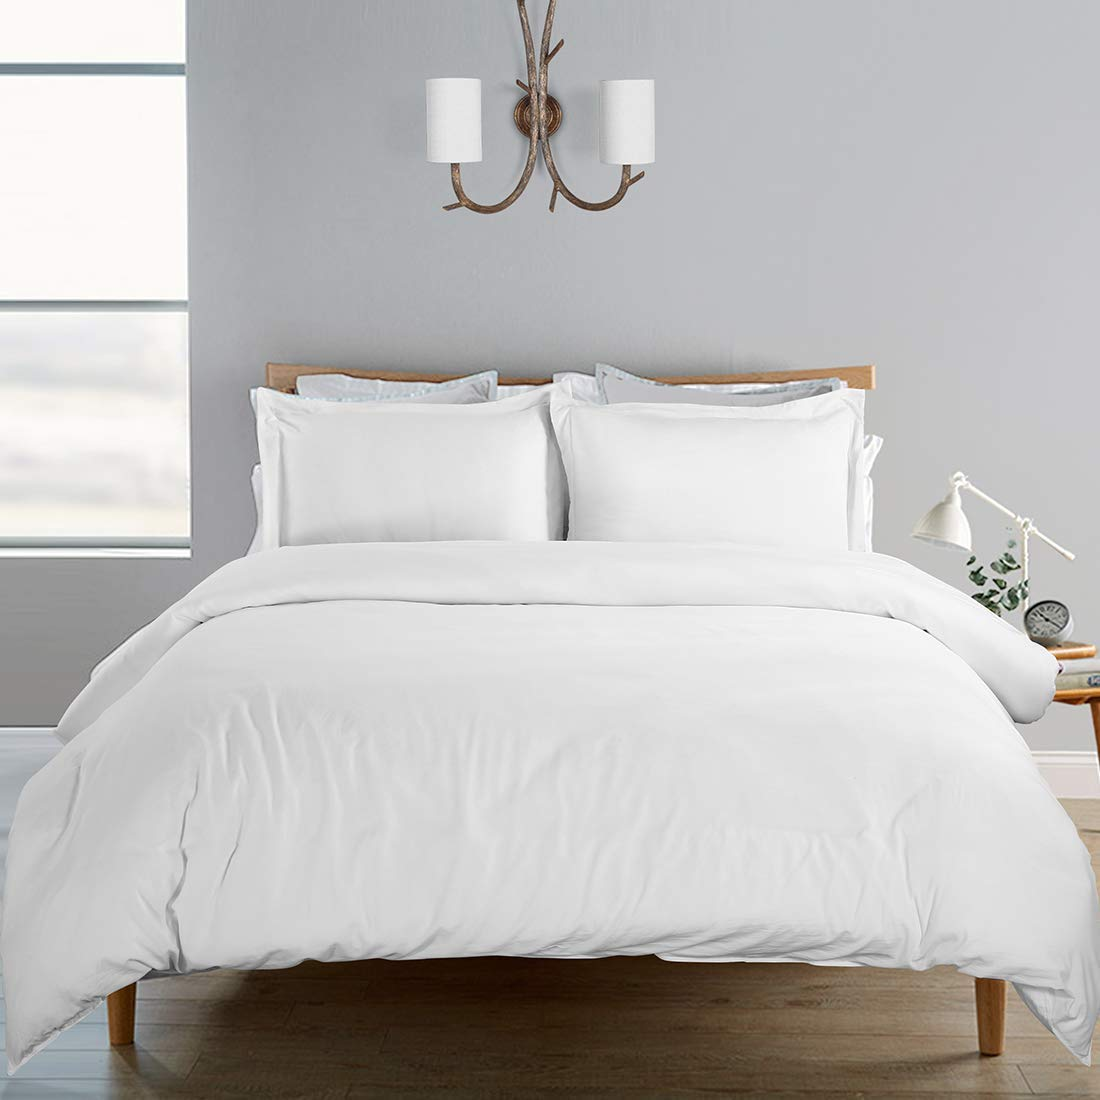 SORMAG 100% Washed Cotton Duvet Cover 3 Piece, Comforter Cover Queen Full Size, Solid Color and Ultra Soft with Zipper Closure, Corner Ties, Simple Bedding Style, White